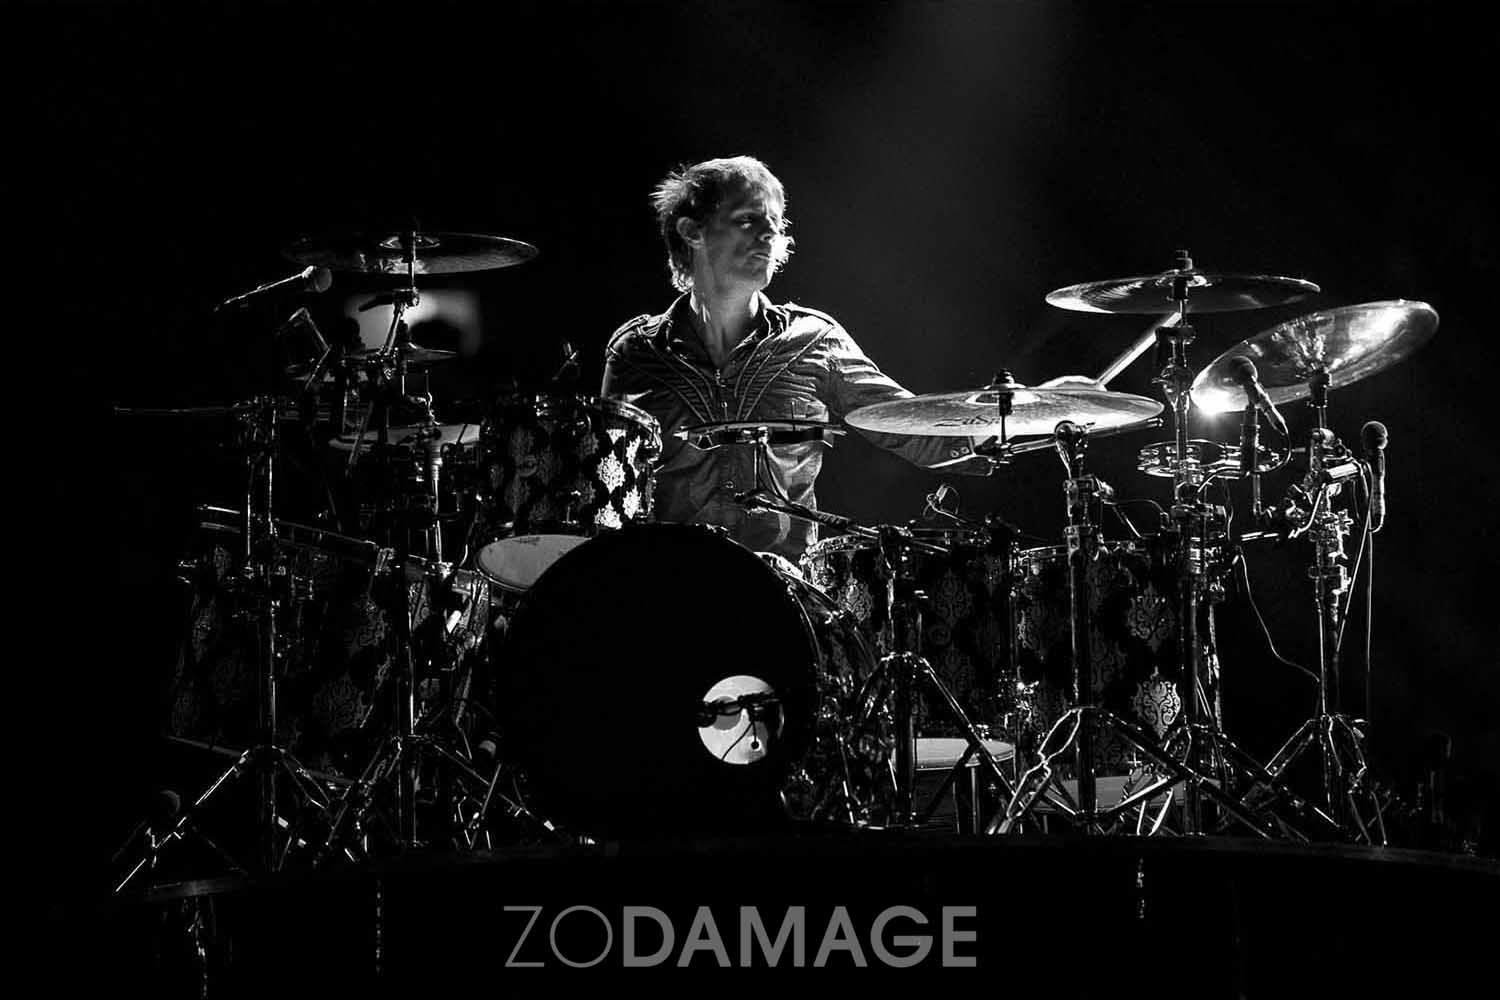 Muse (Dominic Howard), Rod Laver Arena 2010